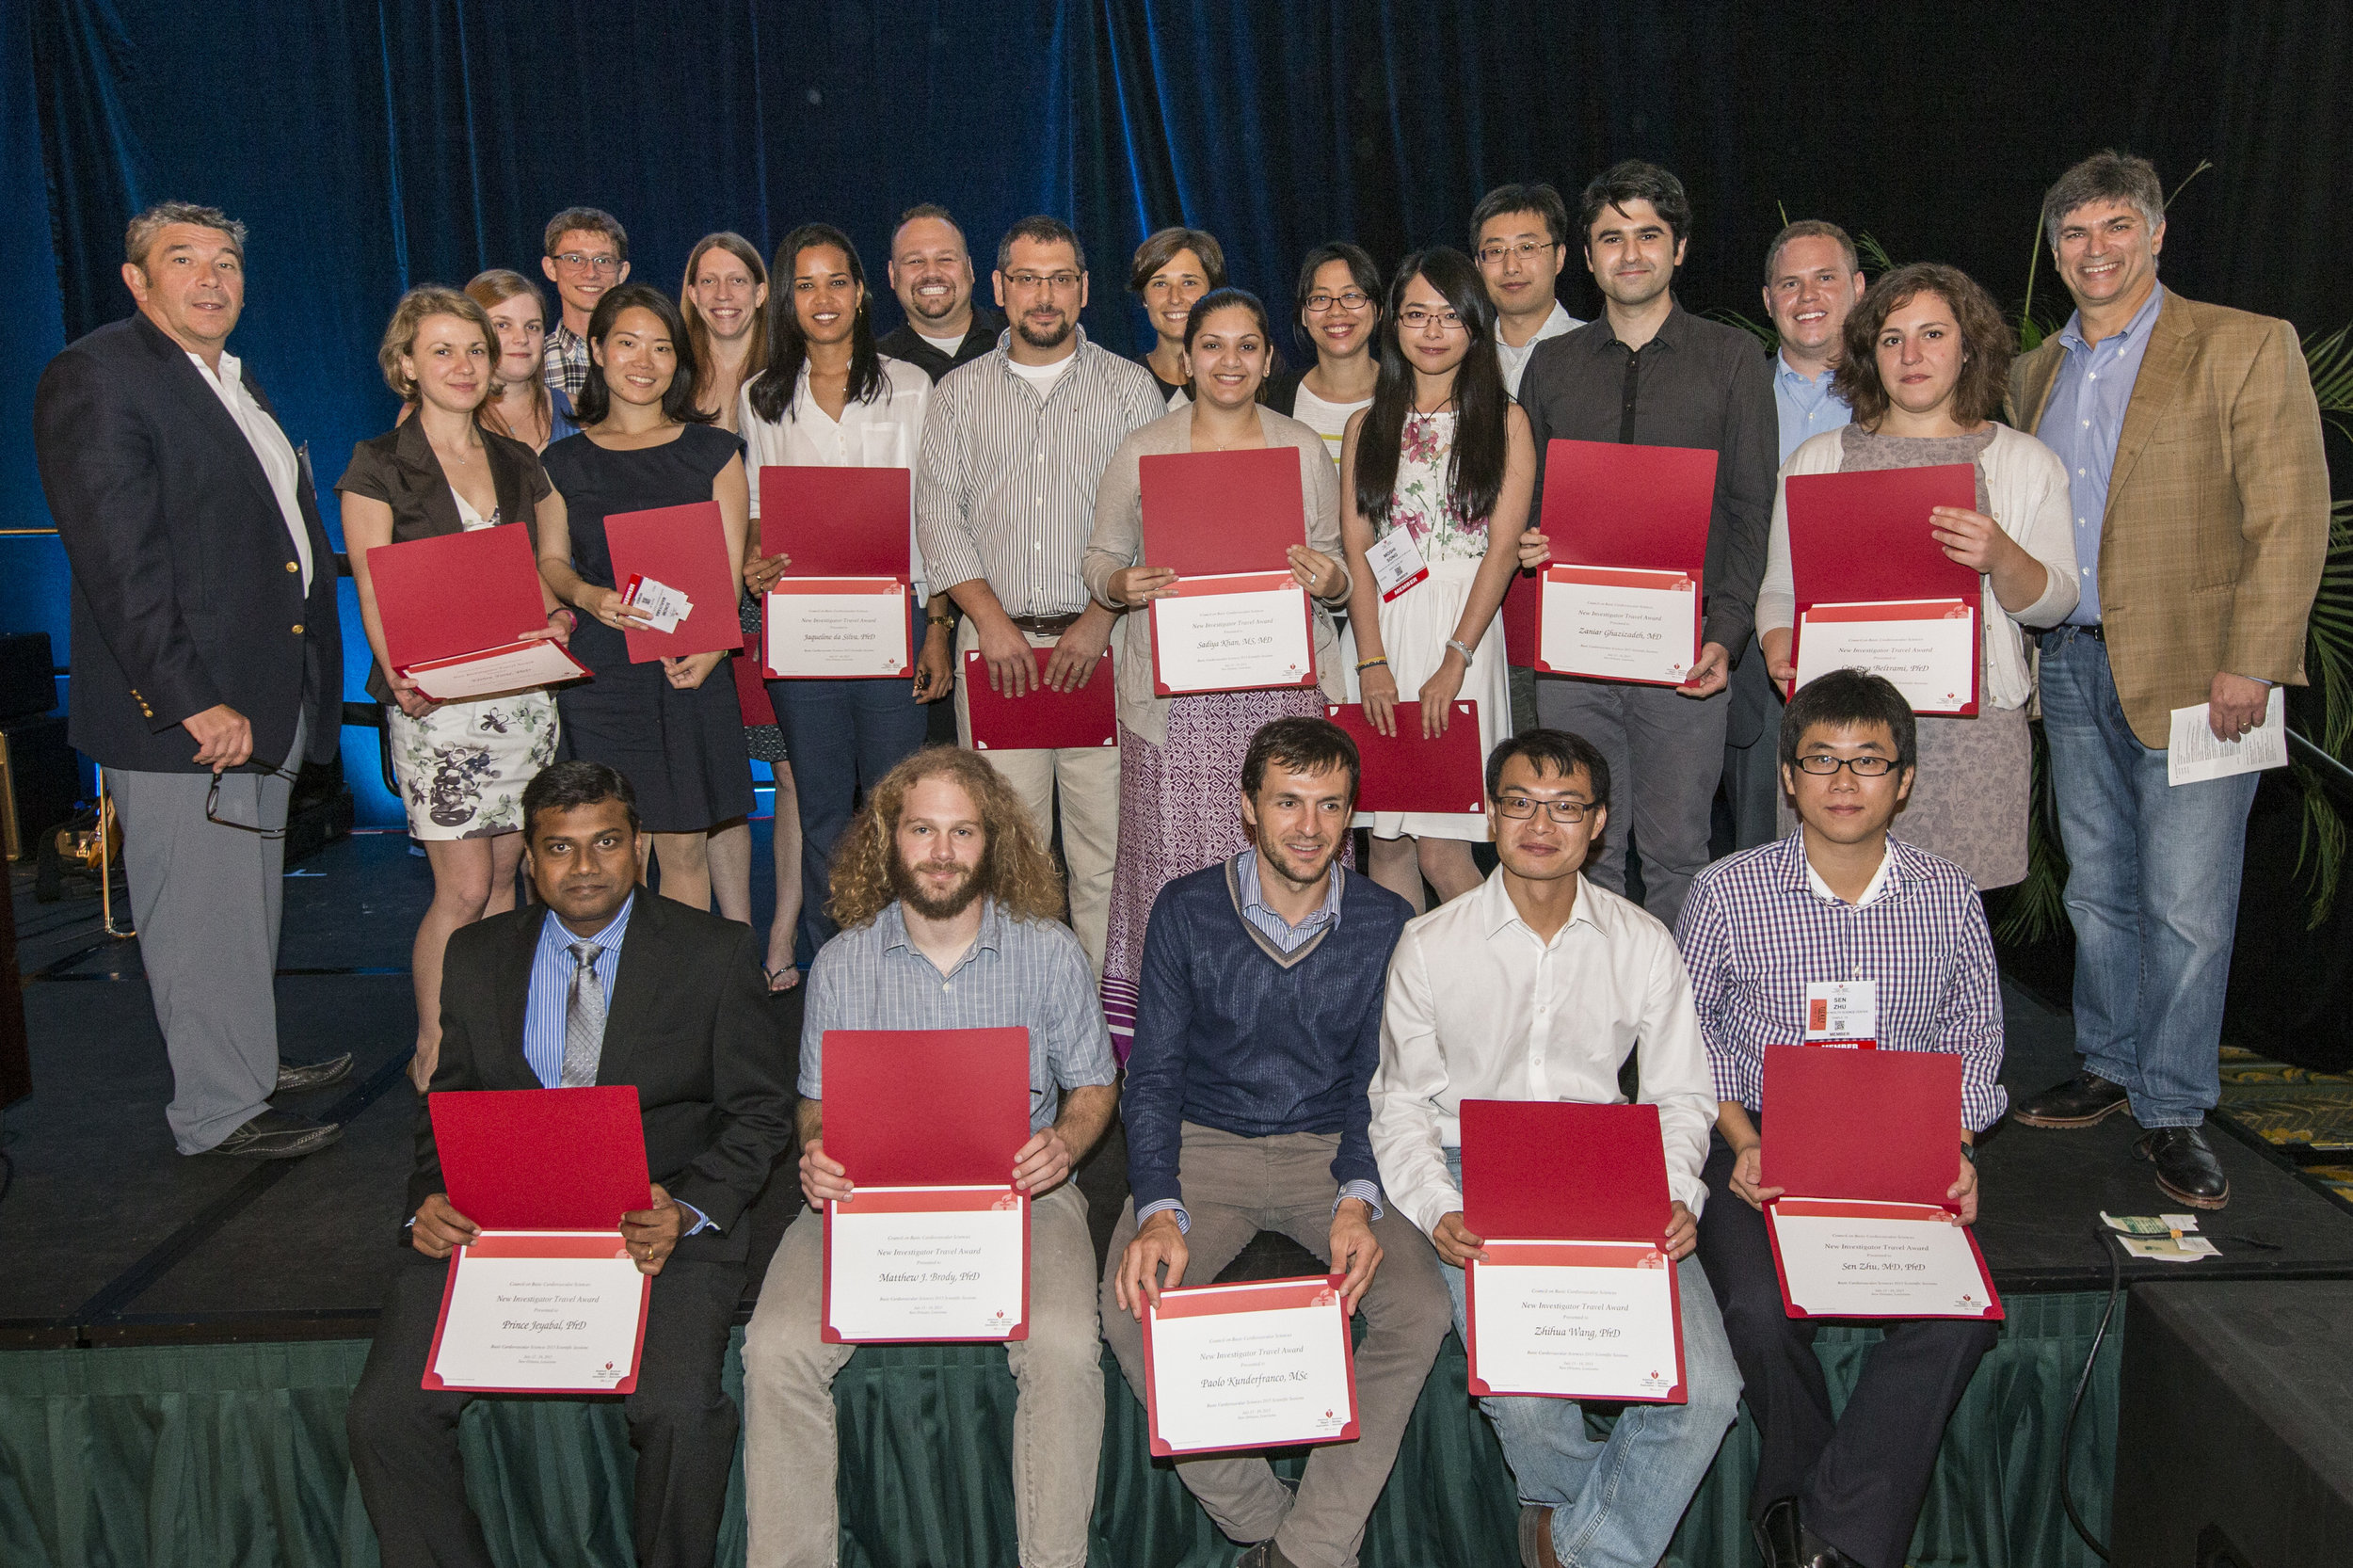 Tim Luongo (3rd from right, top row) after receiving his award.